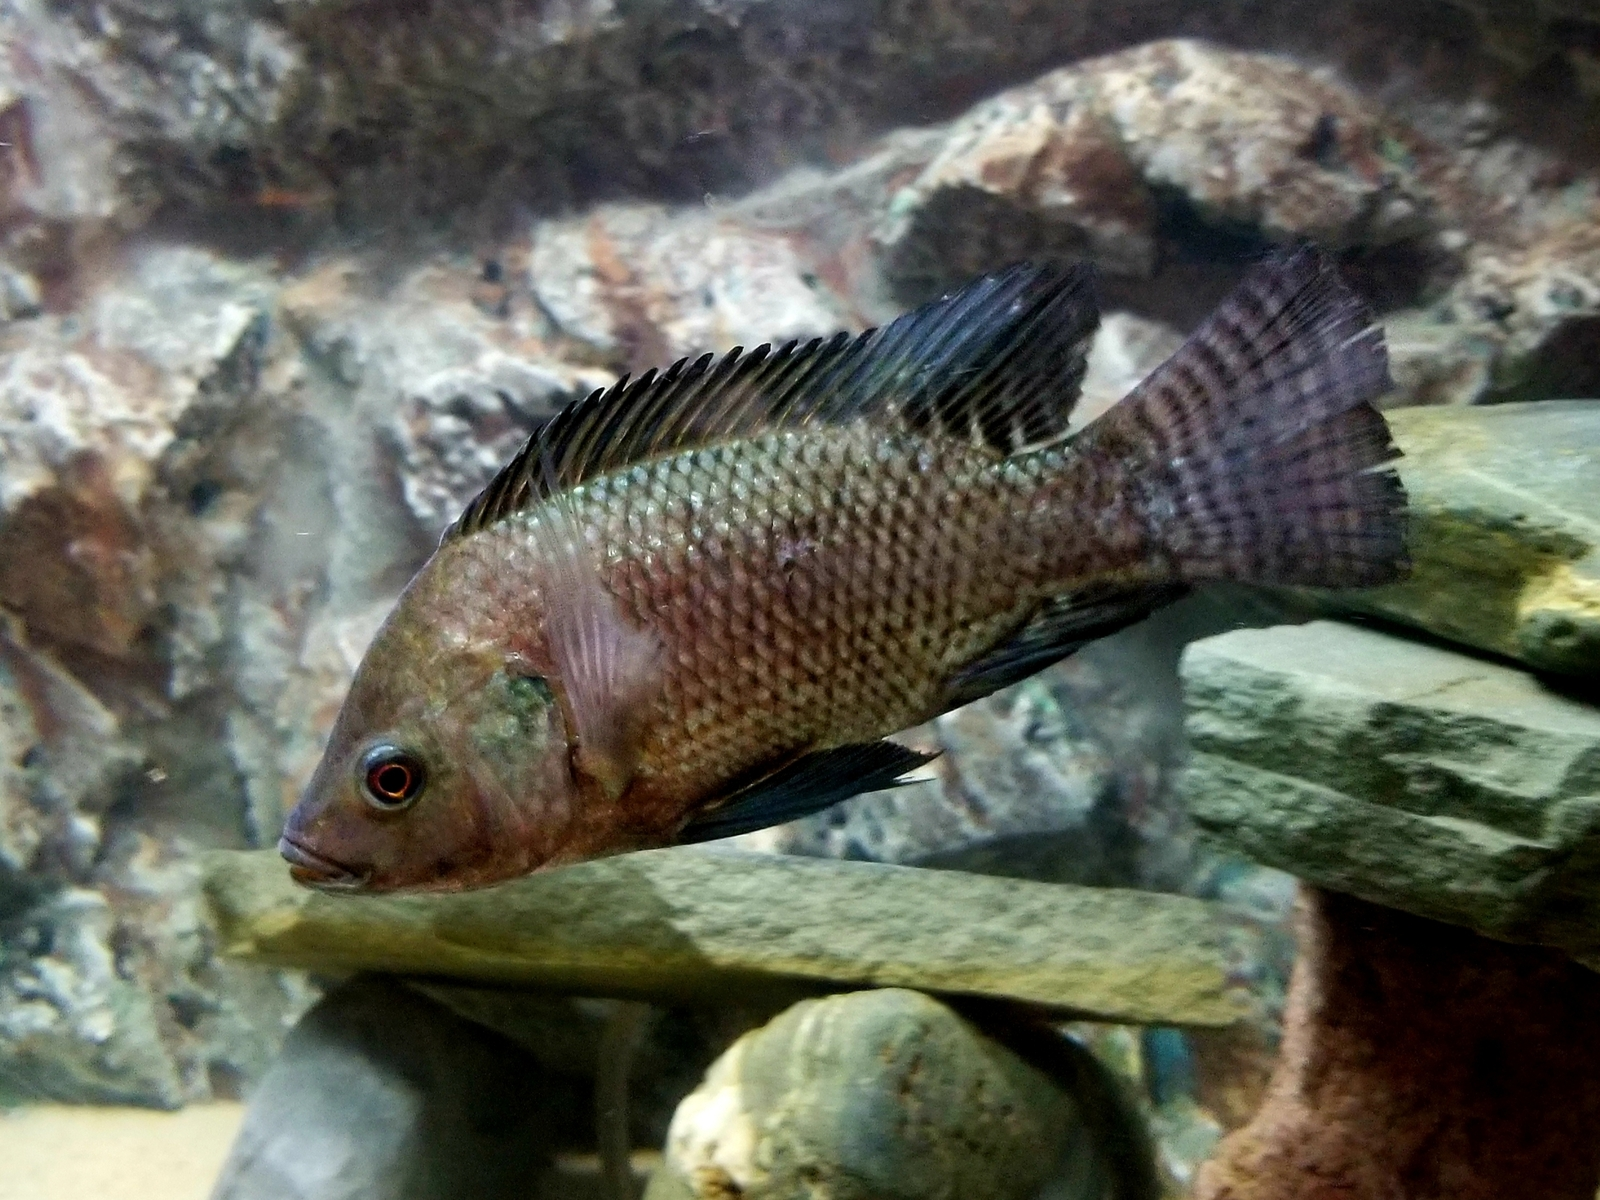 new tilapia | by Dan Burkett